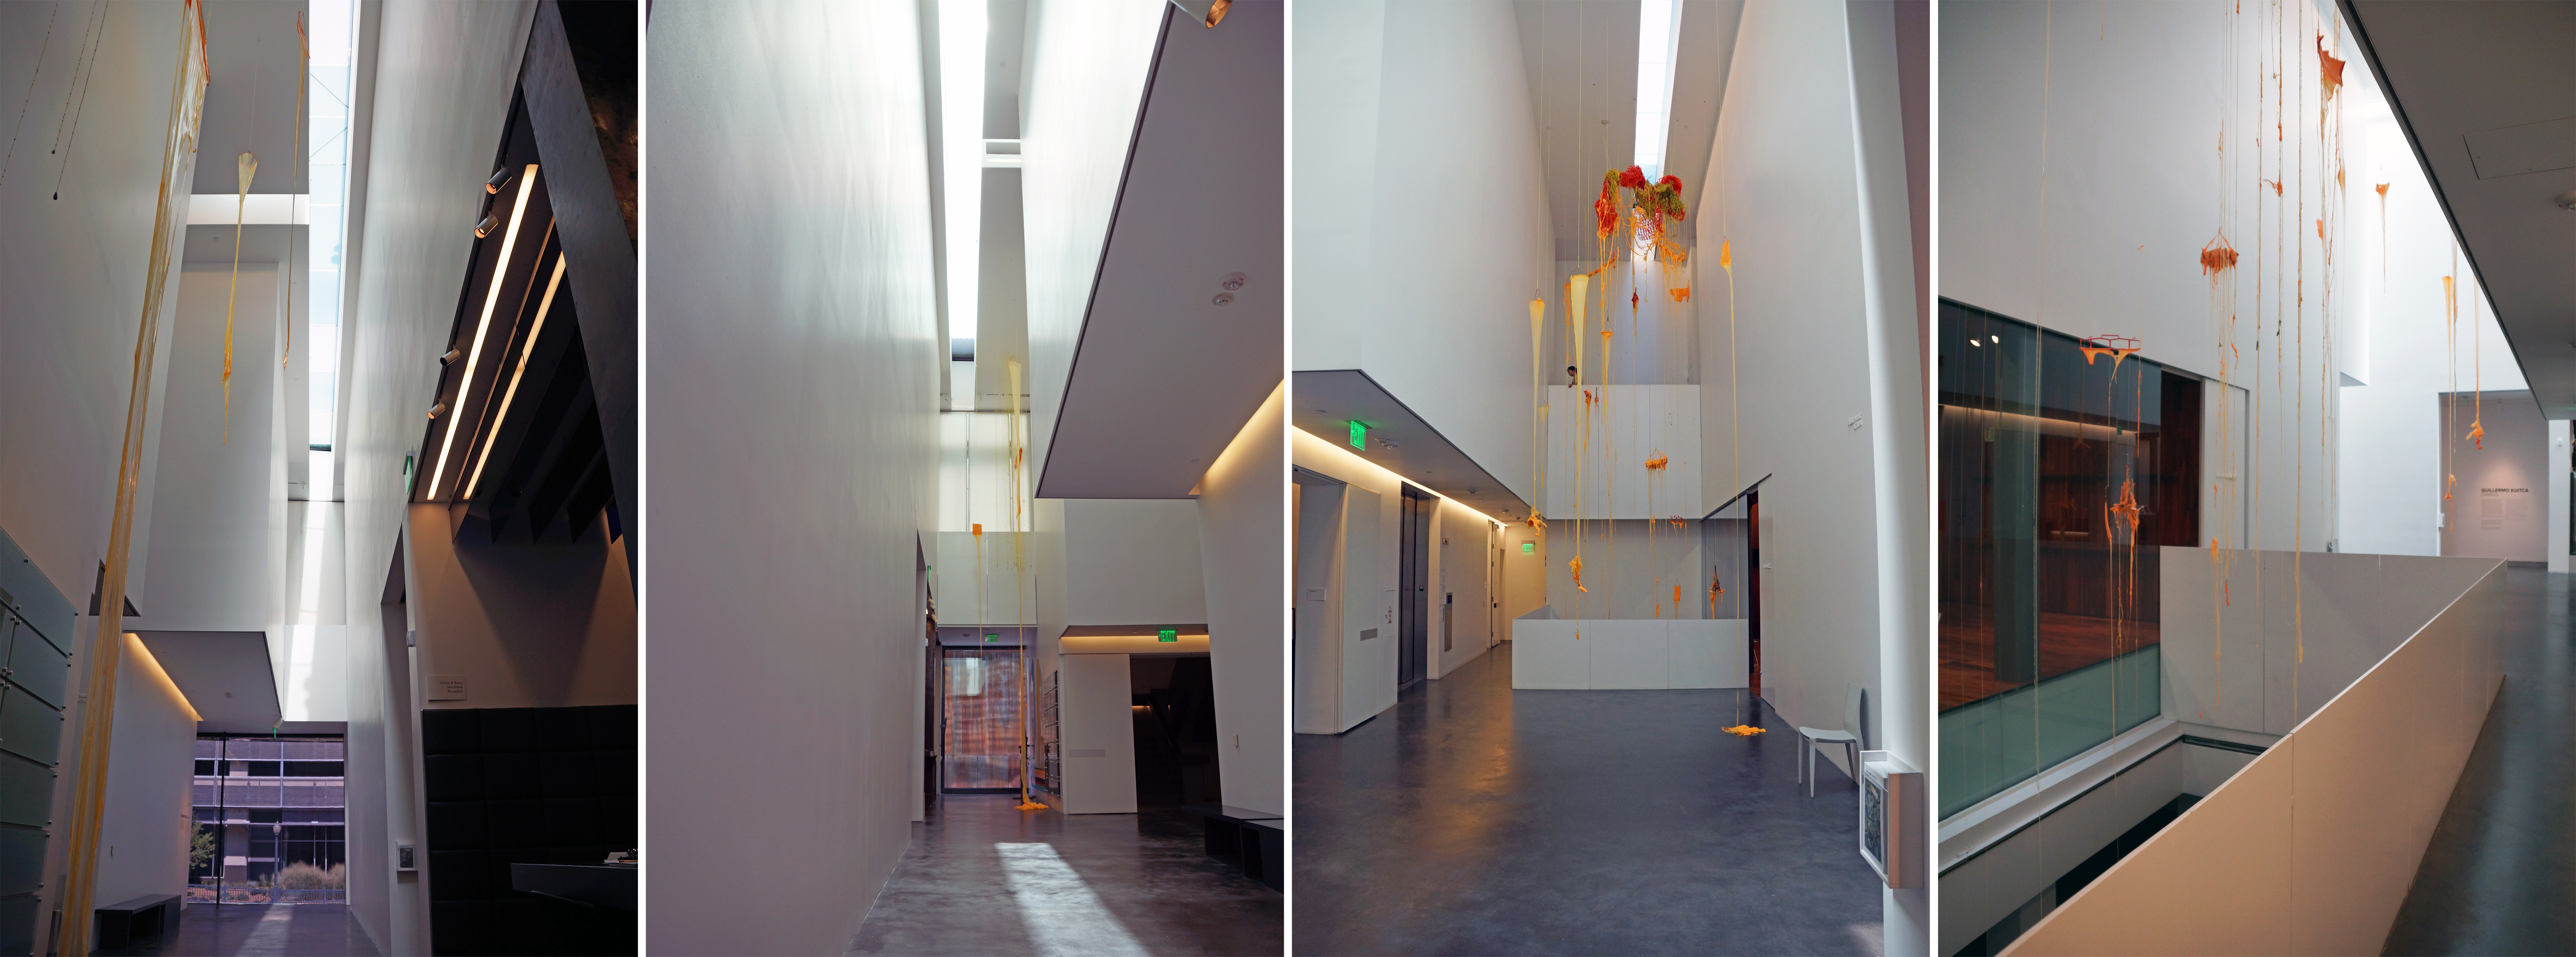 to create how their a workplace environment interior right denver photos corporate project working physical commercial can details flooring modular with and projects lab elements designer showroom interiors offices demonstrate wall design the slant